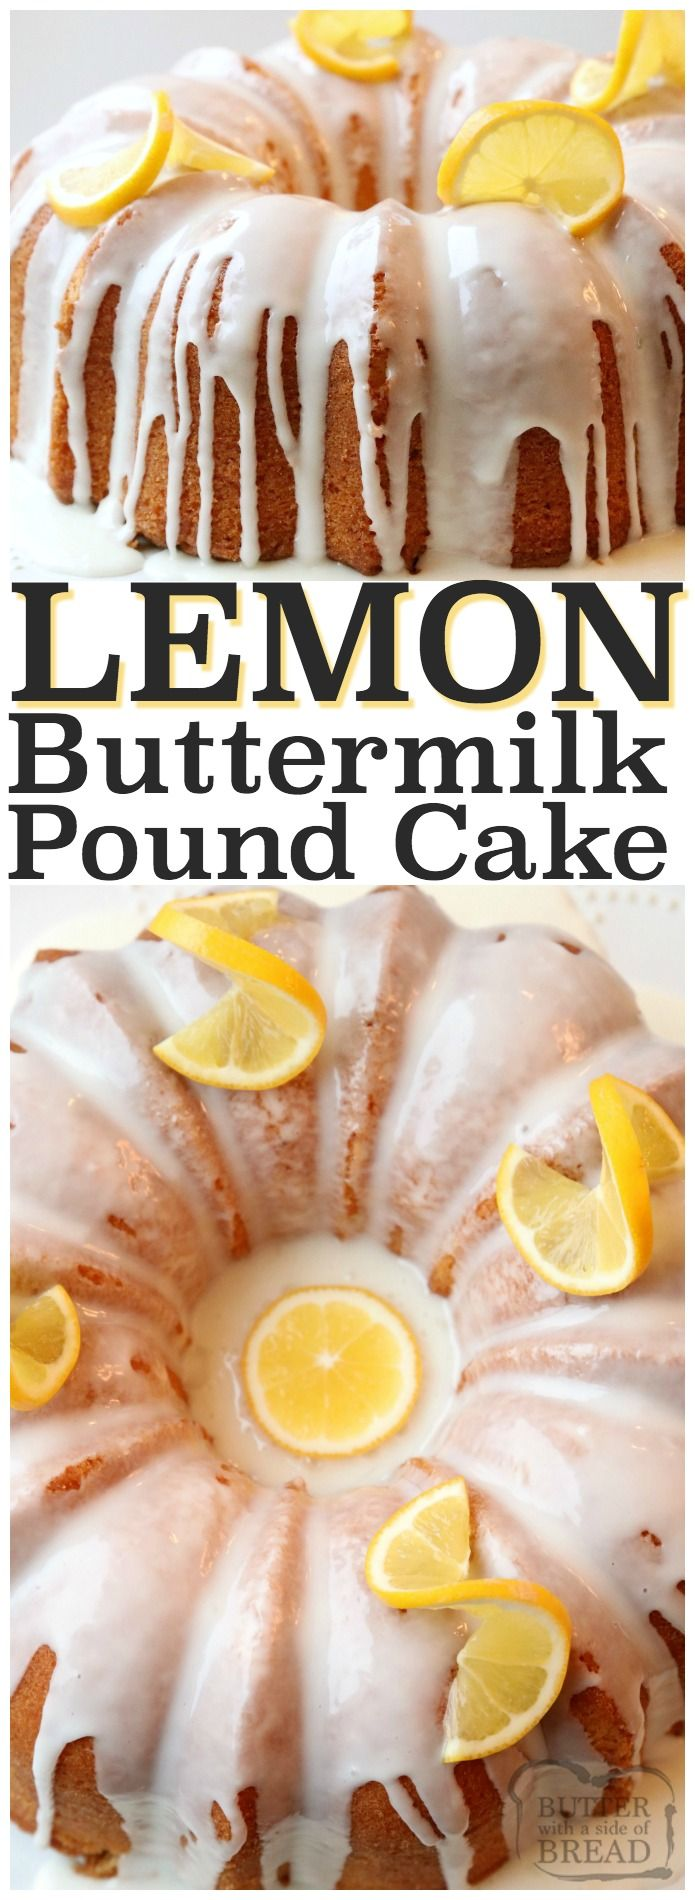 Lemon Buttermilk Pound Cake Is A Classic Pound Cake Recipe With The Addition Of Fresh Classic Pound Cake Recipe Lemon Buttermilk Pound Cake Buttermilk Recipes